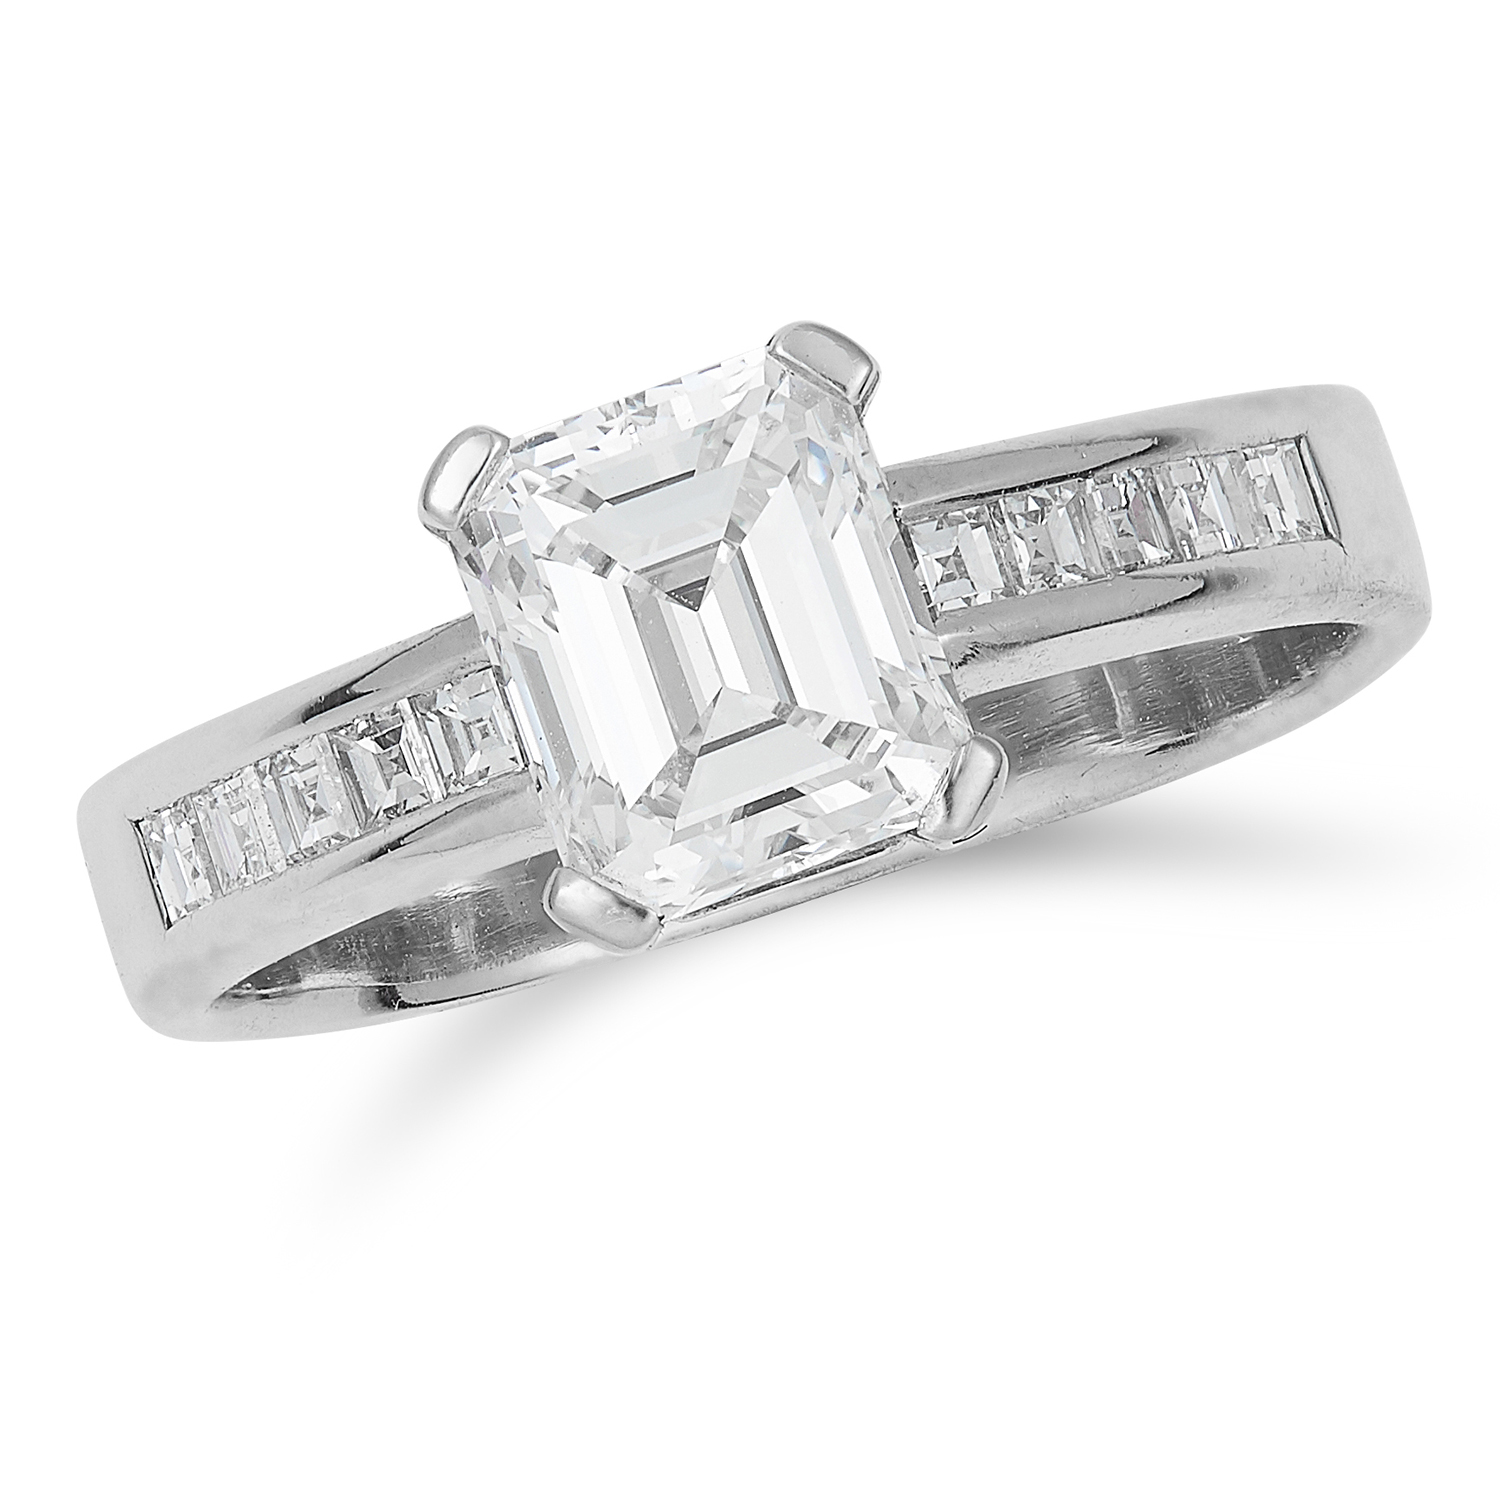 1.23 CARAT DIAMOND DRESS RING in 18ct white gold, set with an emerald cut diamond of approximately